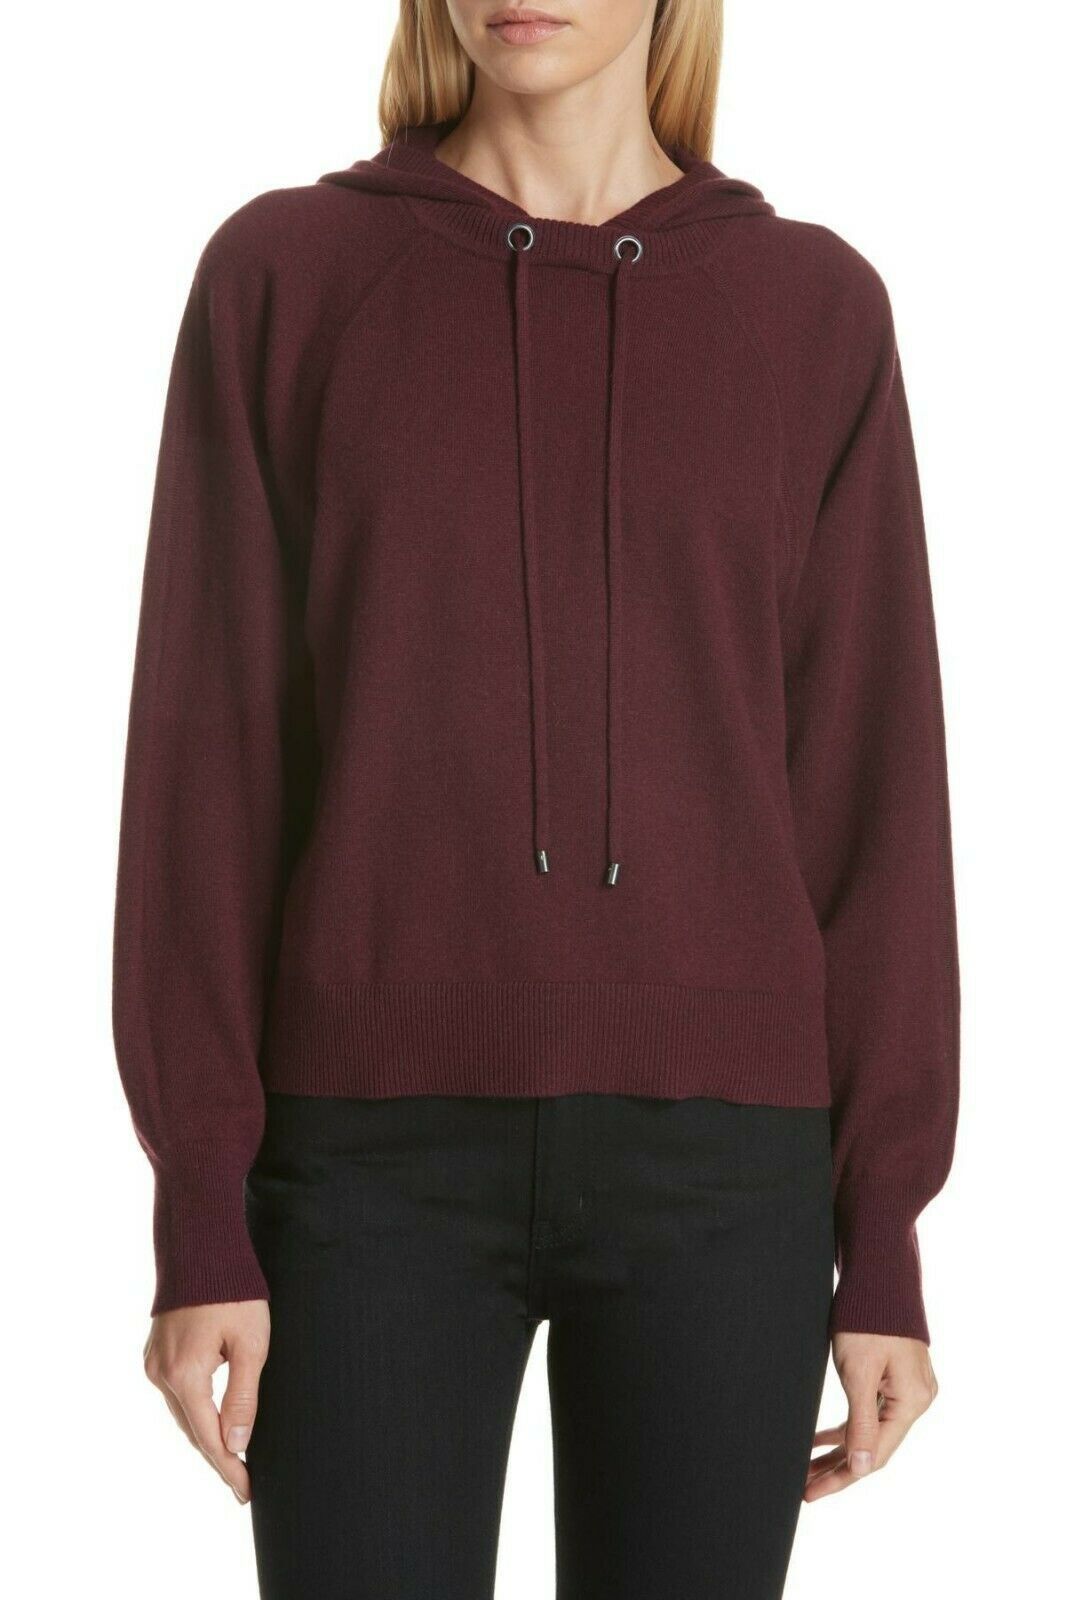 NEW Nordstrom Signature Cashmere Blend Hoodie Sweatshirt in Burgendy-SZ XL  S680